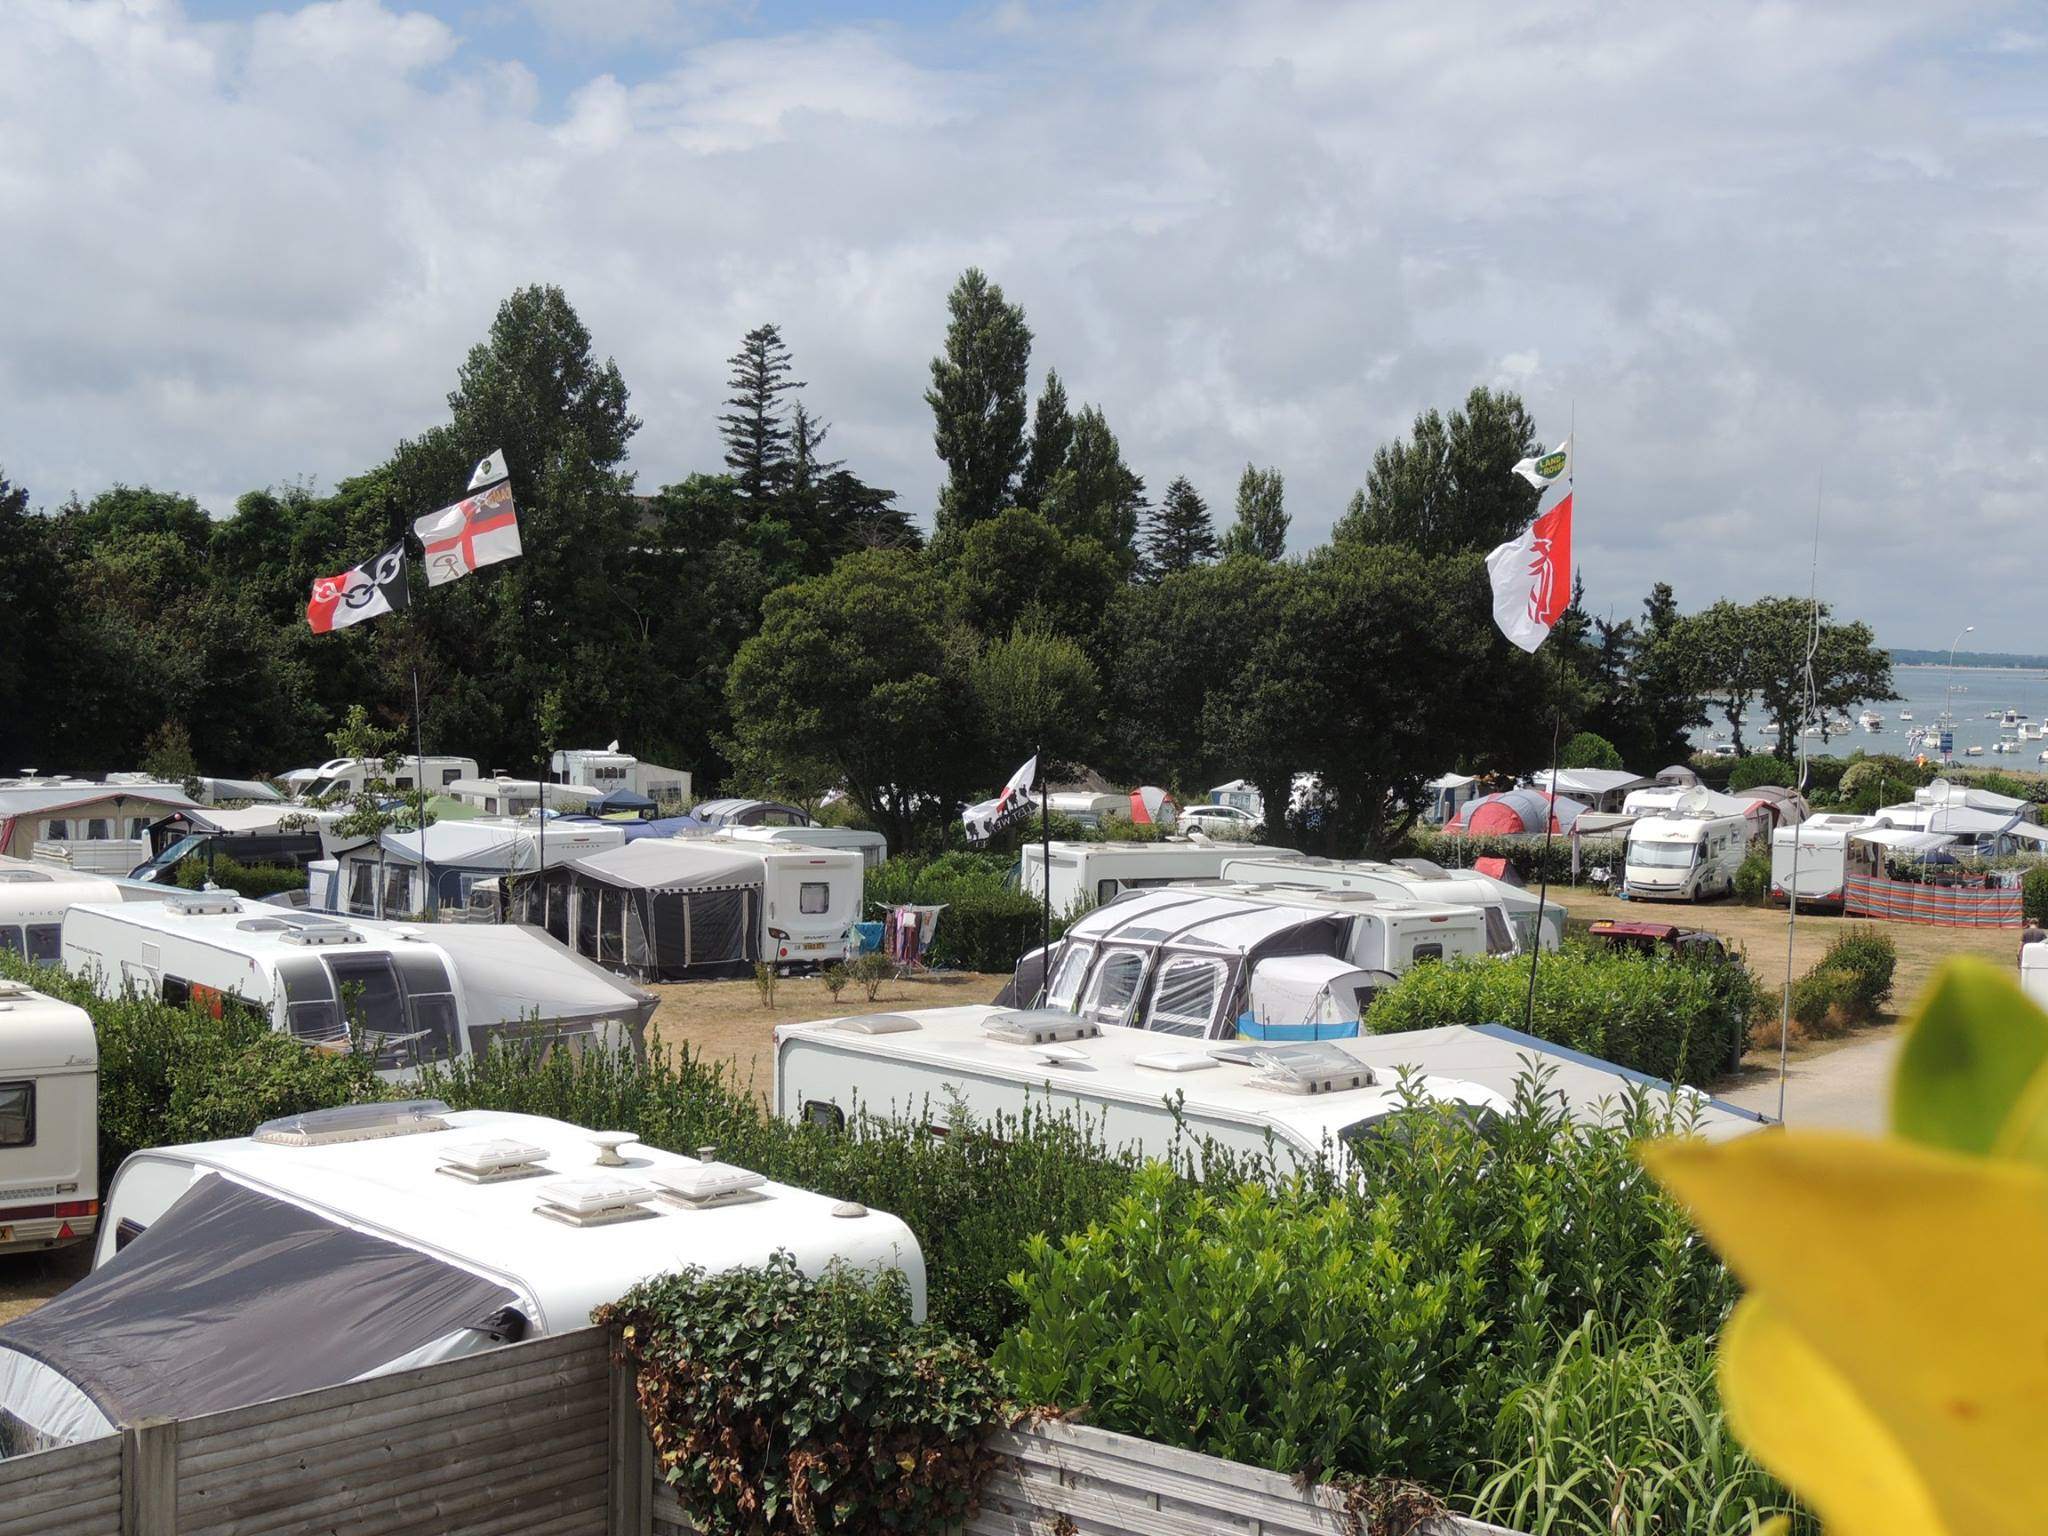 Camping Le Cabellou Plage, Concarneau, Brittany